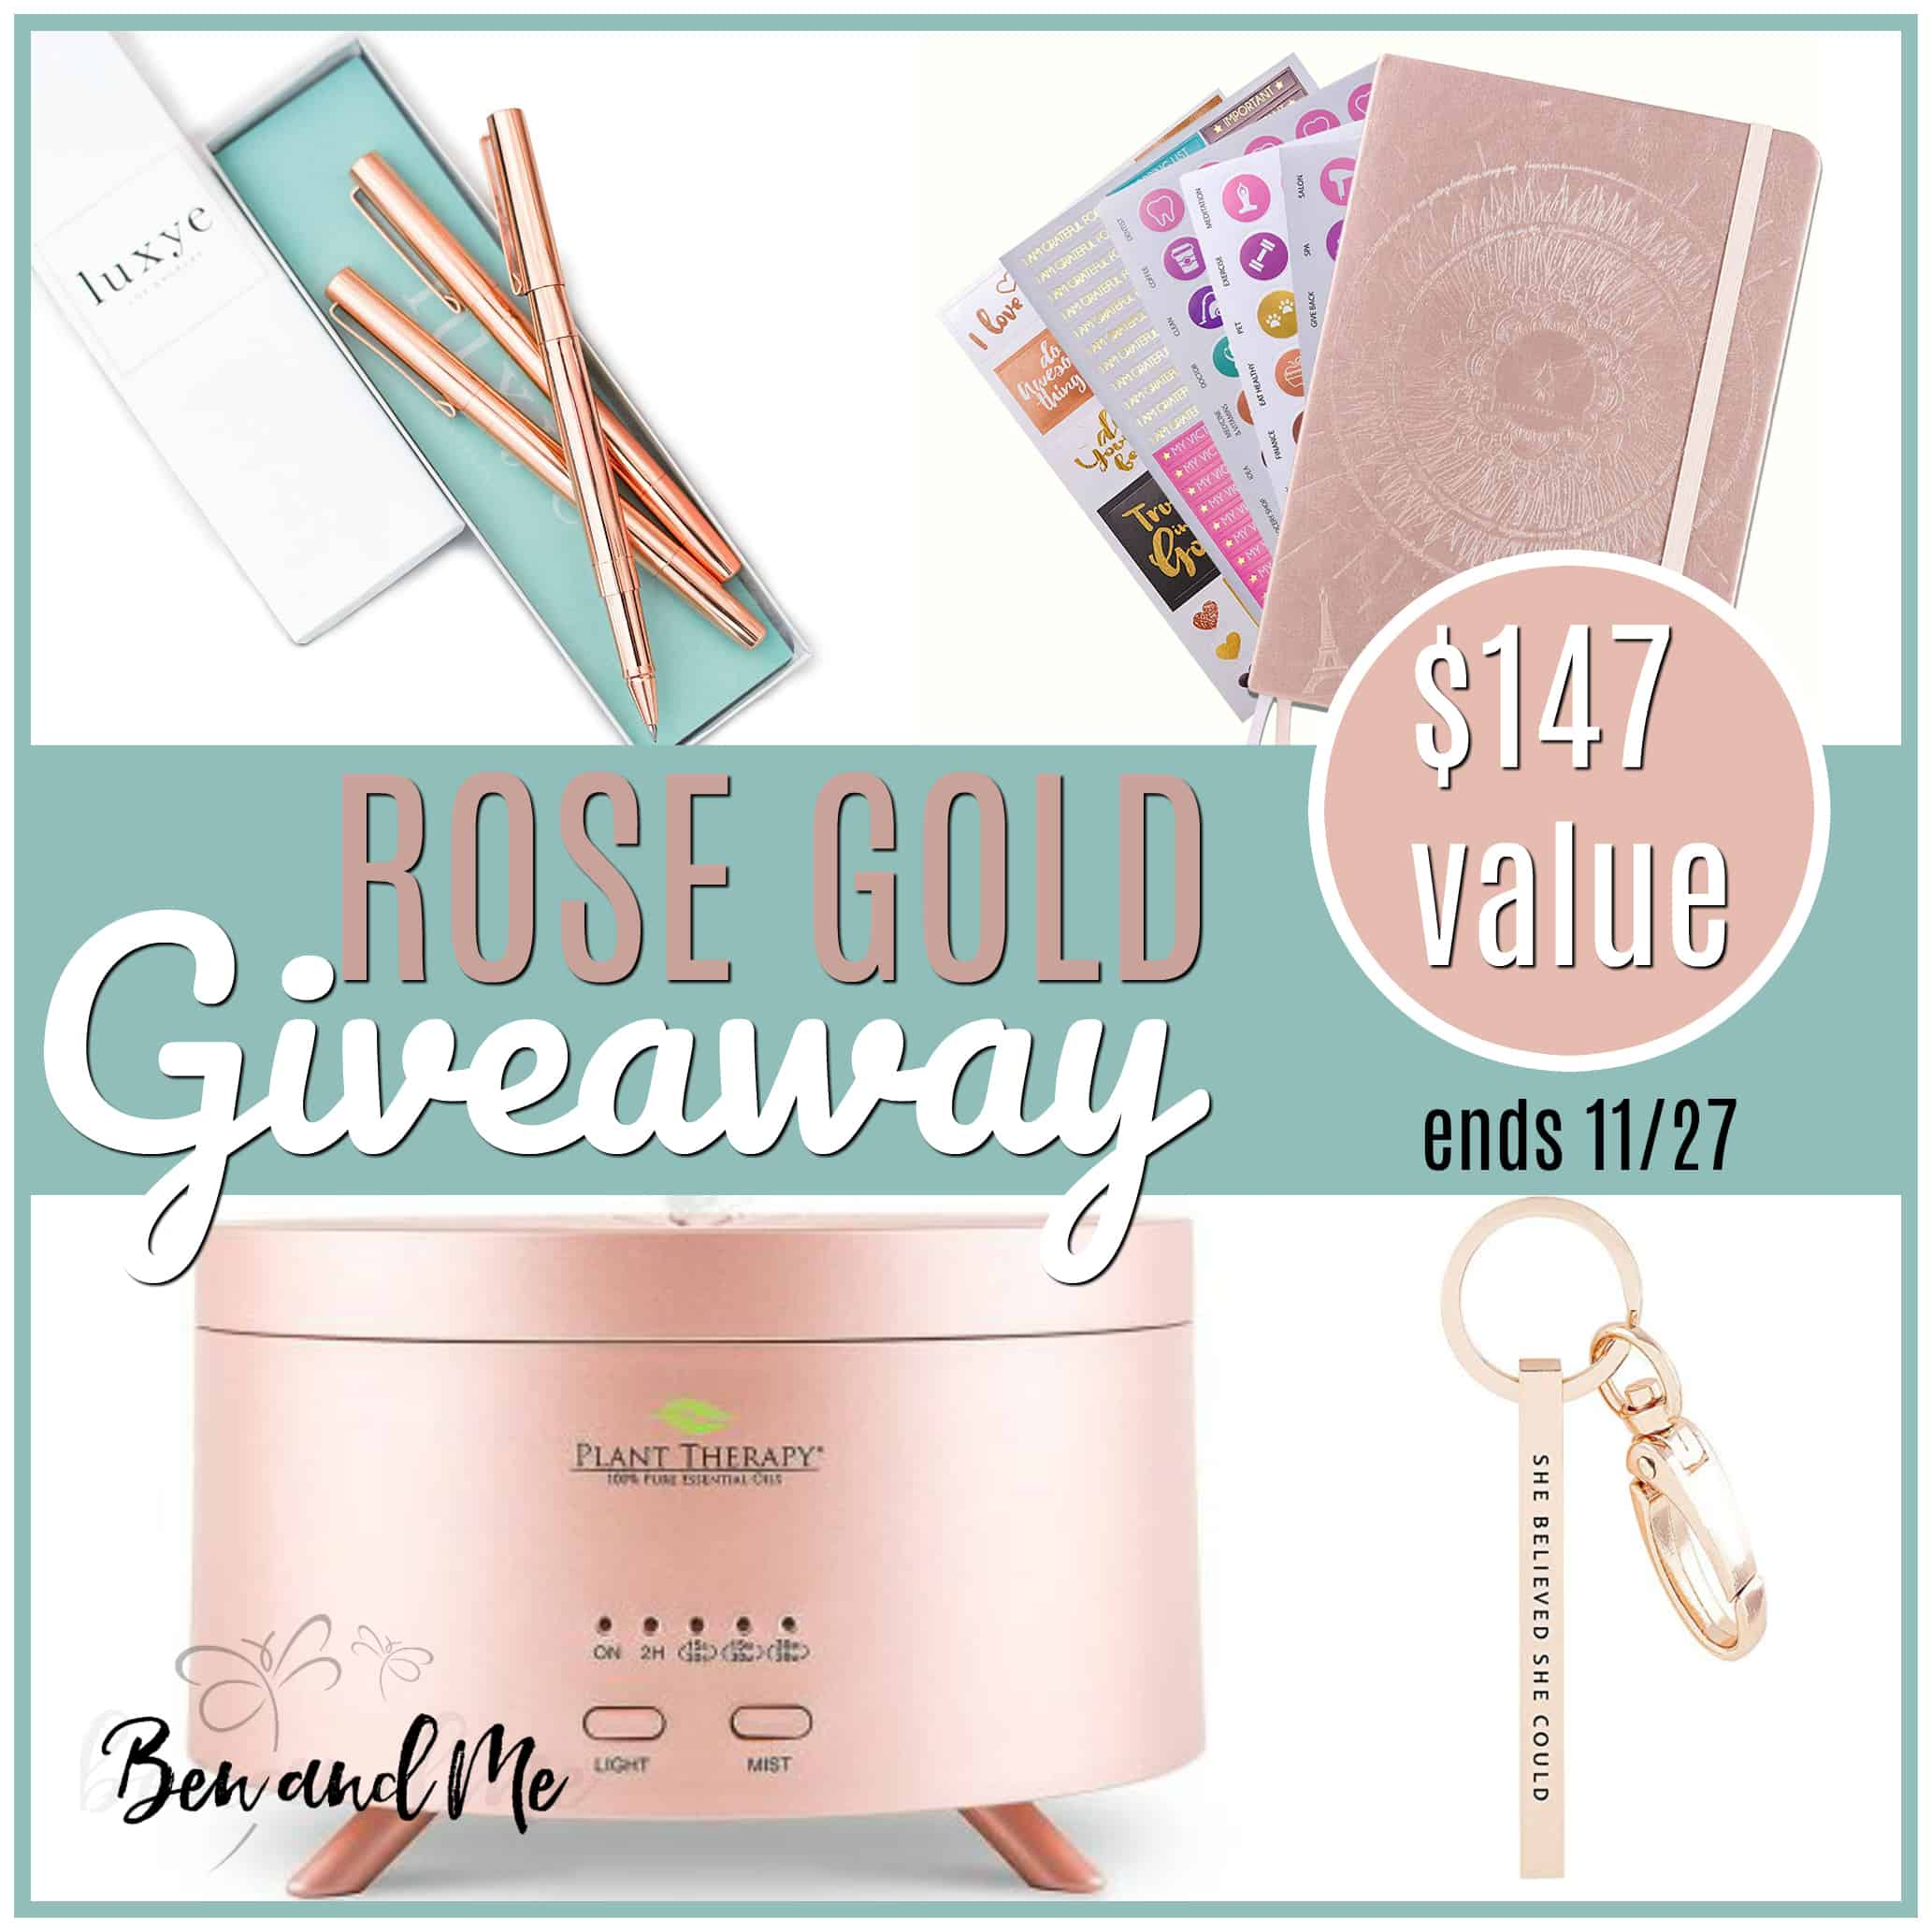 Check out this rose gold gift guide and enter to win a bundle of rose gold gifts for yourself! #giveaways #giftguide #giftguides #giftideas #rosegold #giftsforher